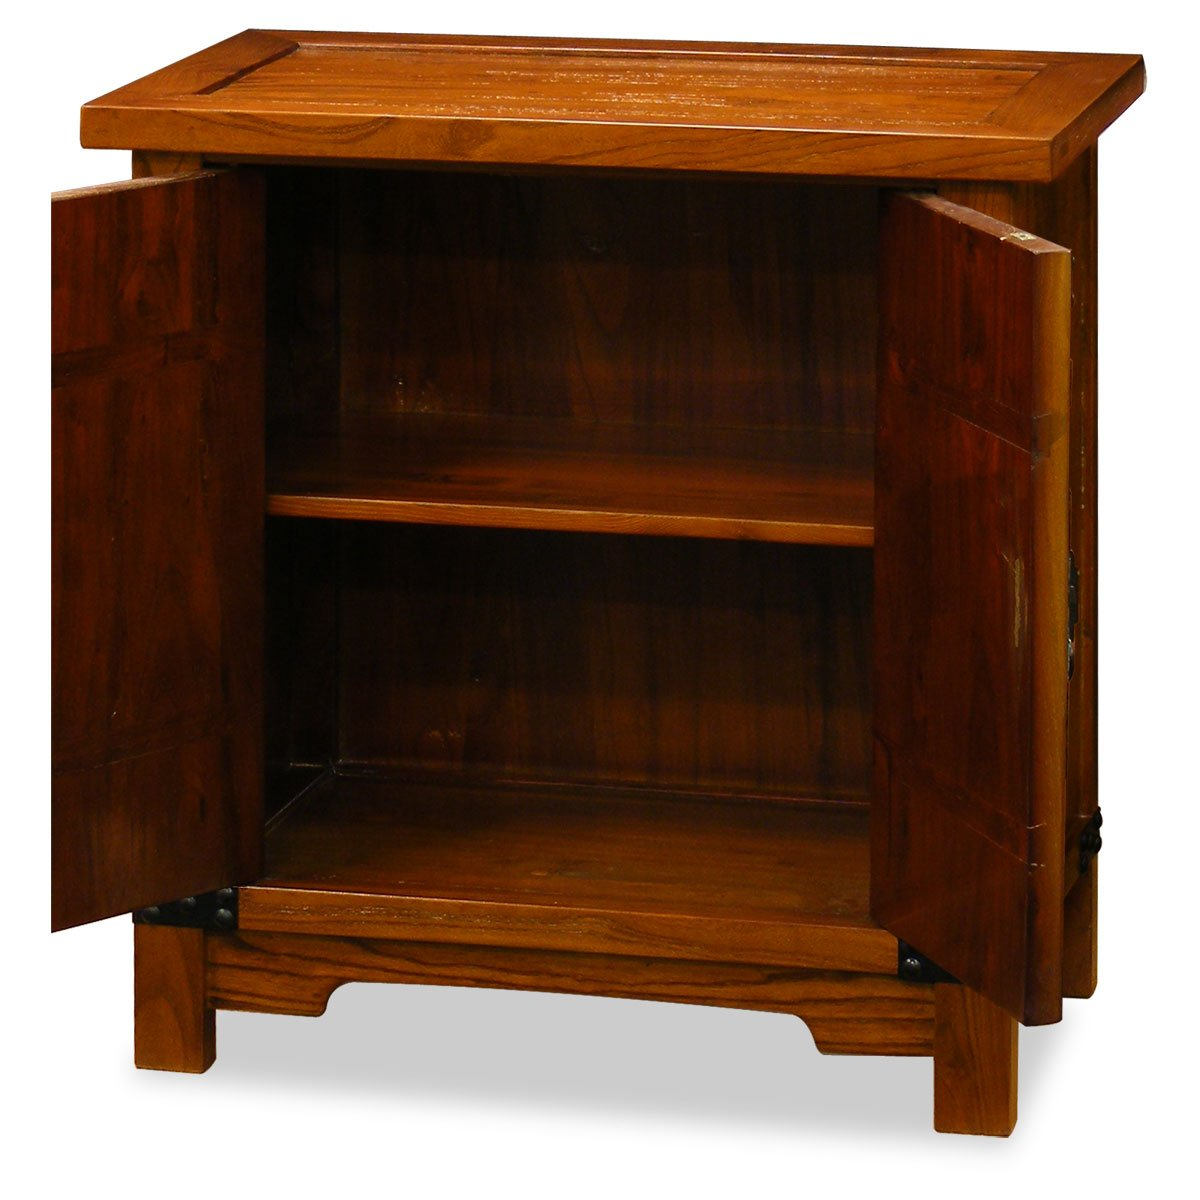 China Furniture Online Elmwood Cabinet, Northern Chinese Style Cabinet Natural Finish 1